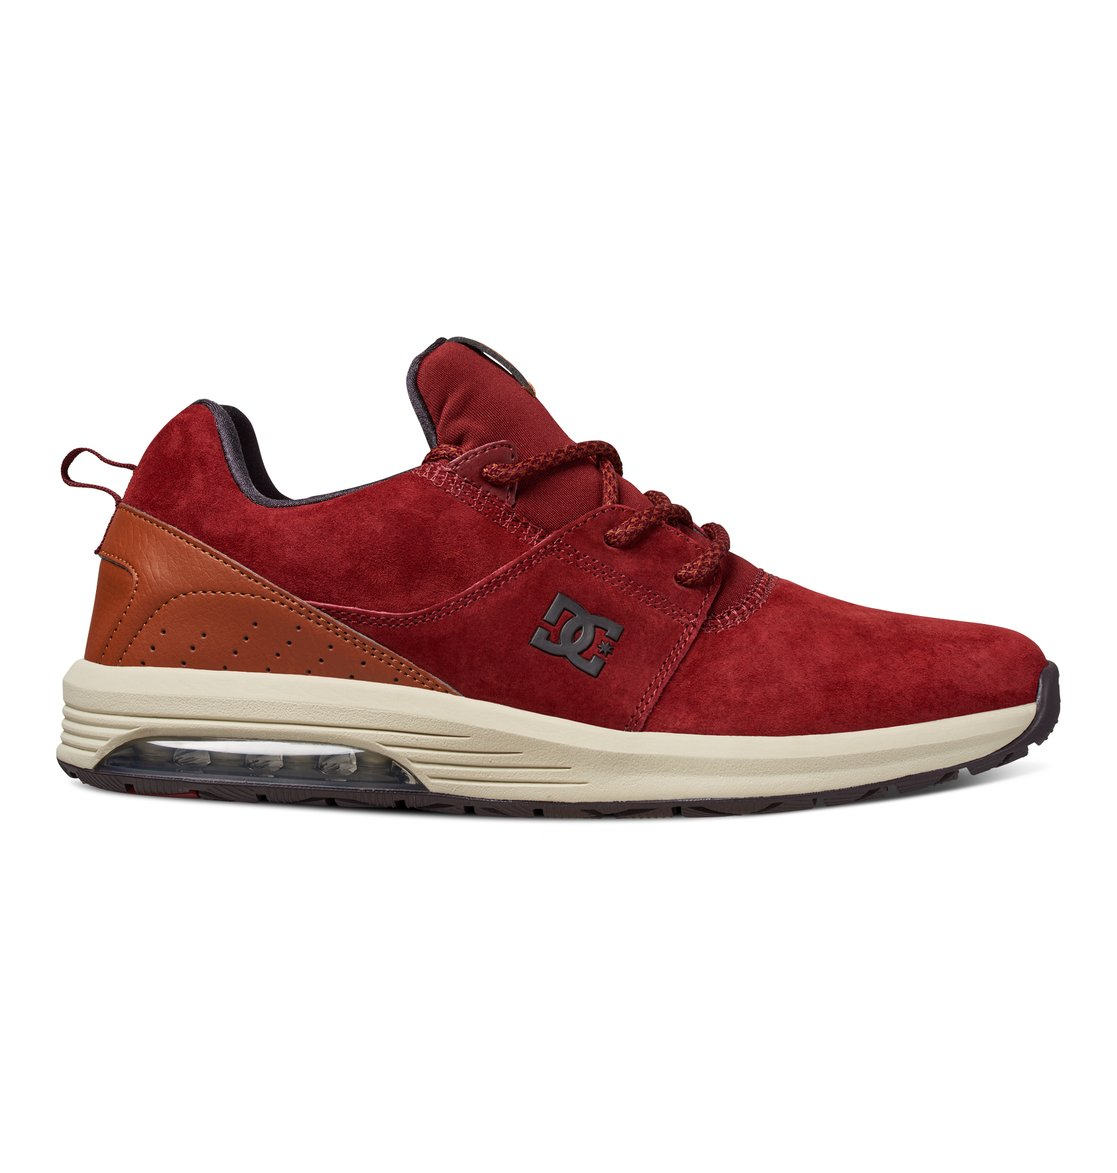 DC SHOES Heathrow Chaussure Homme - Taille 40.5 - ROUGE nxpxPT9SQ